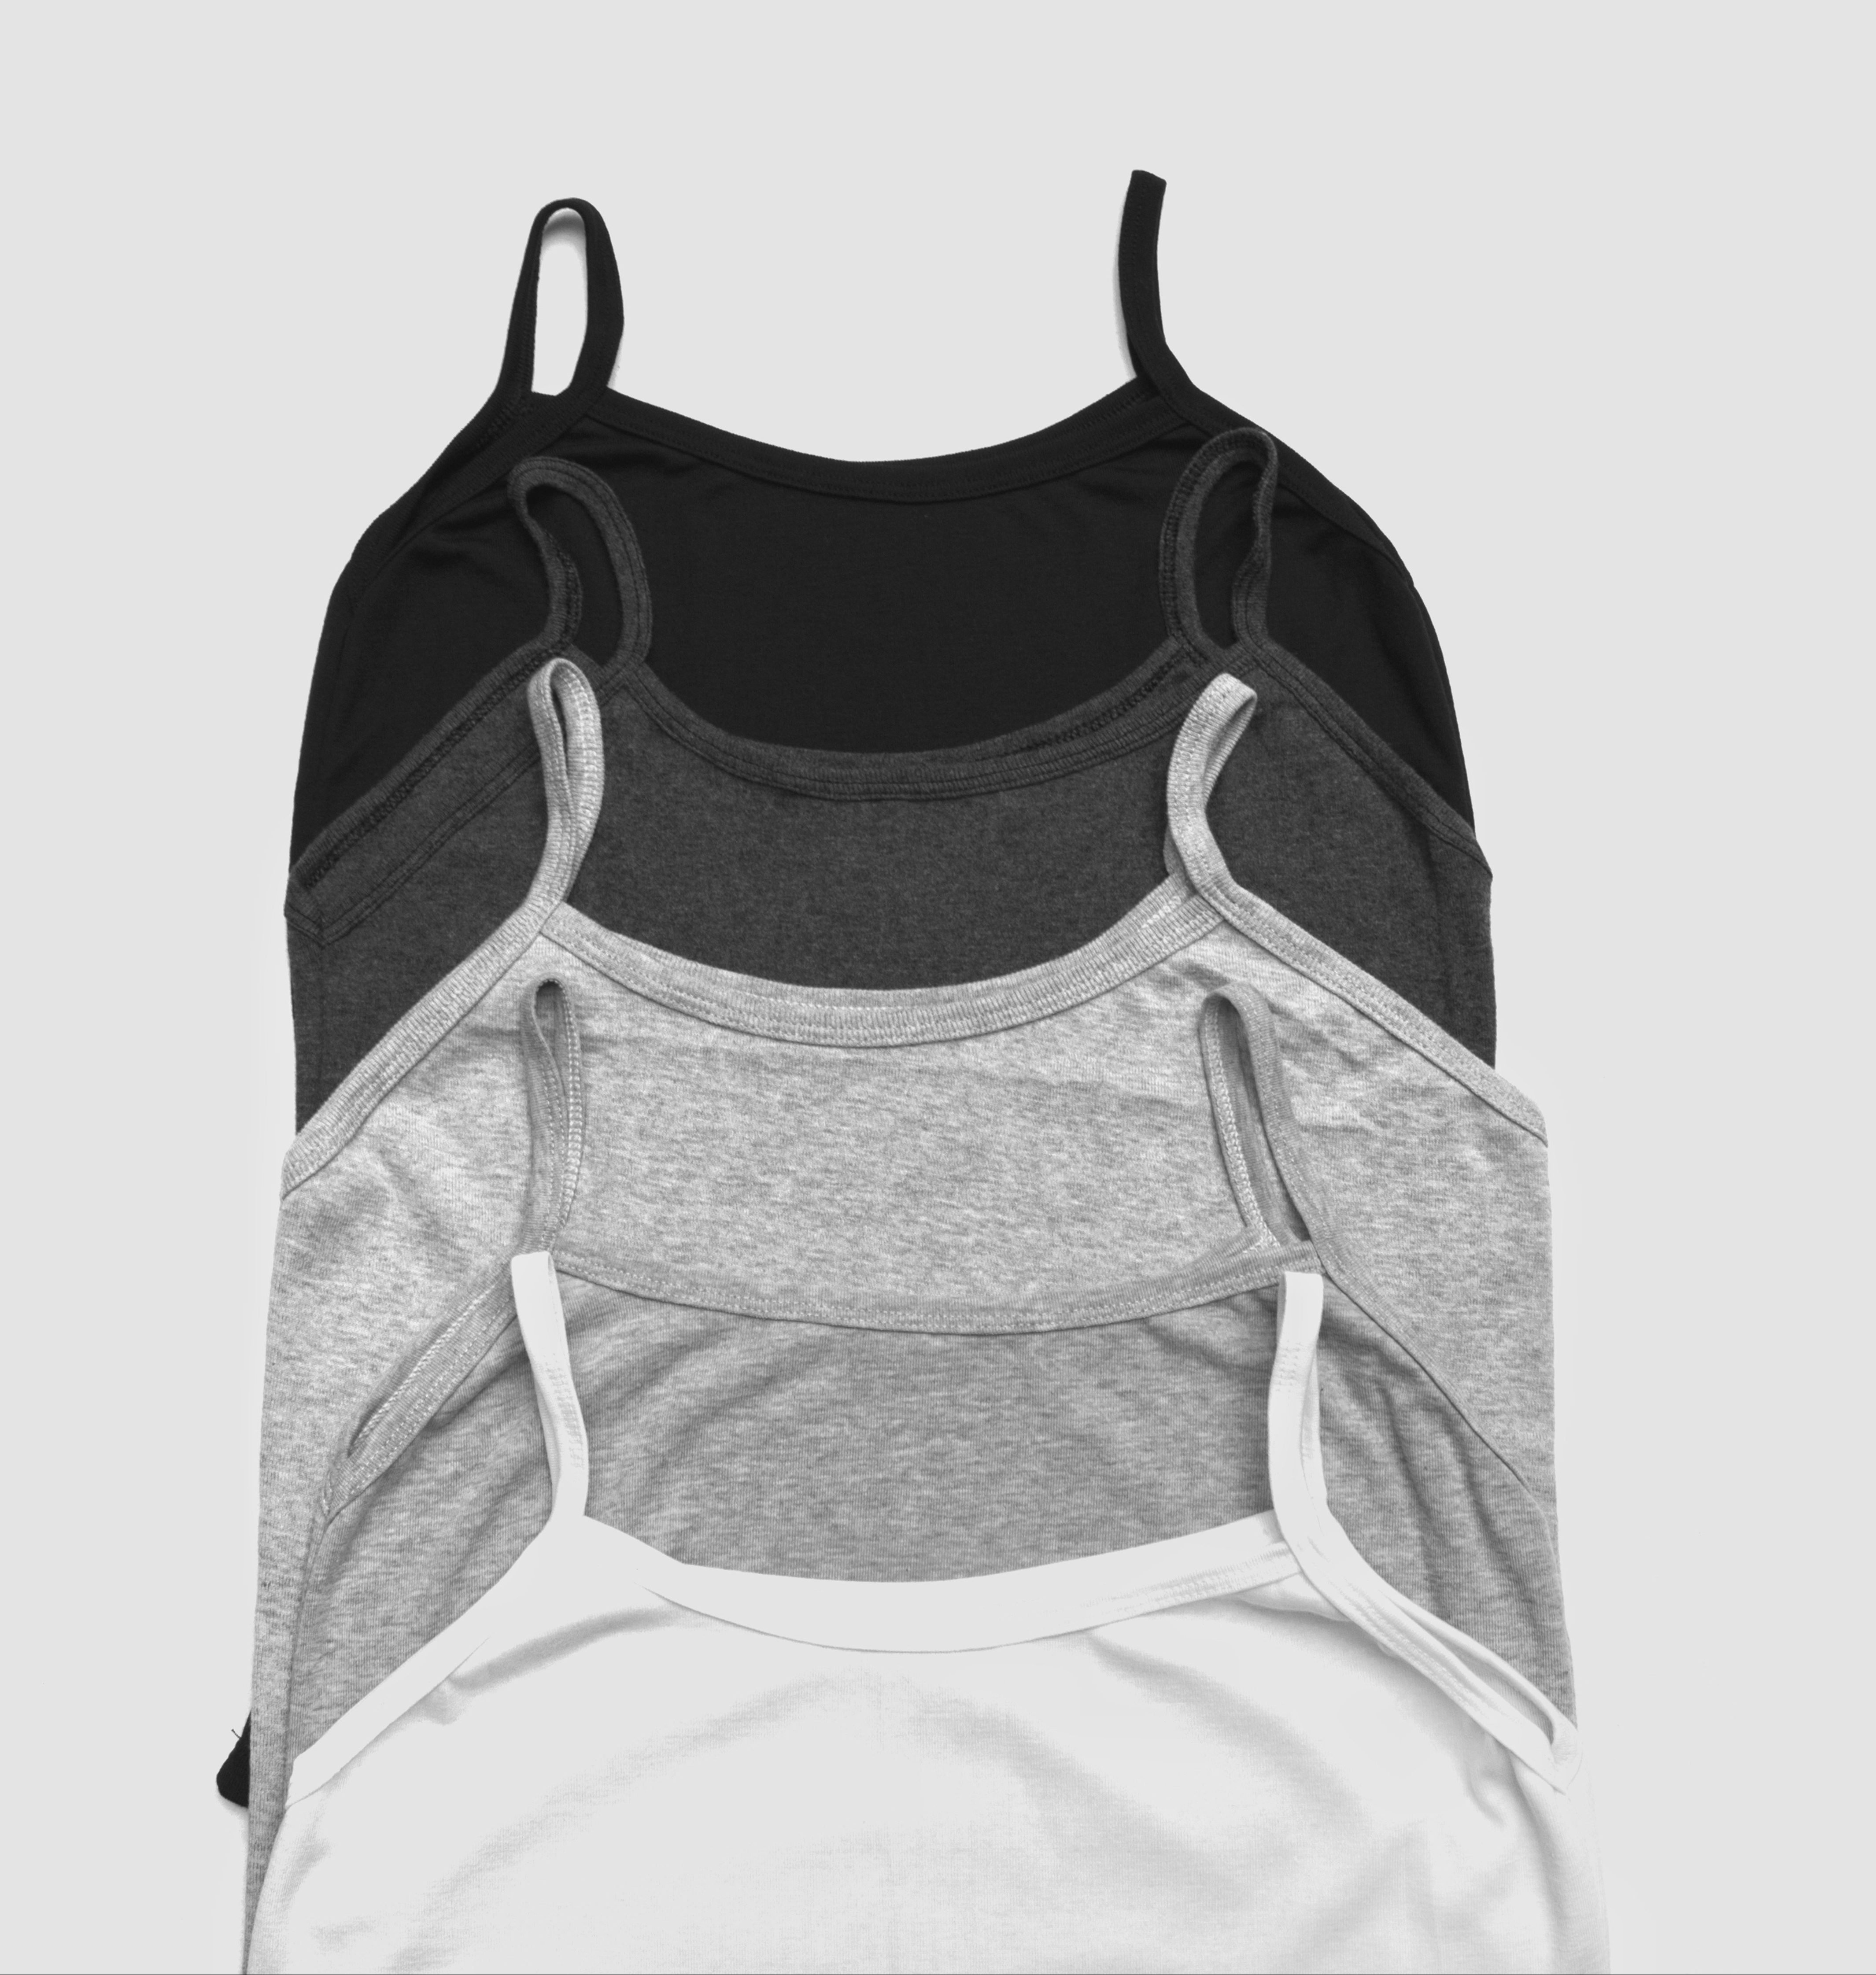 Black, gray and white tank top on white background